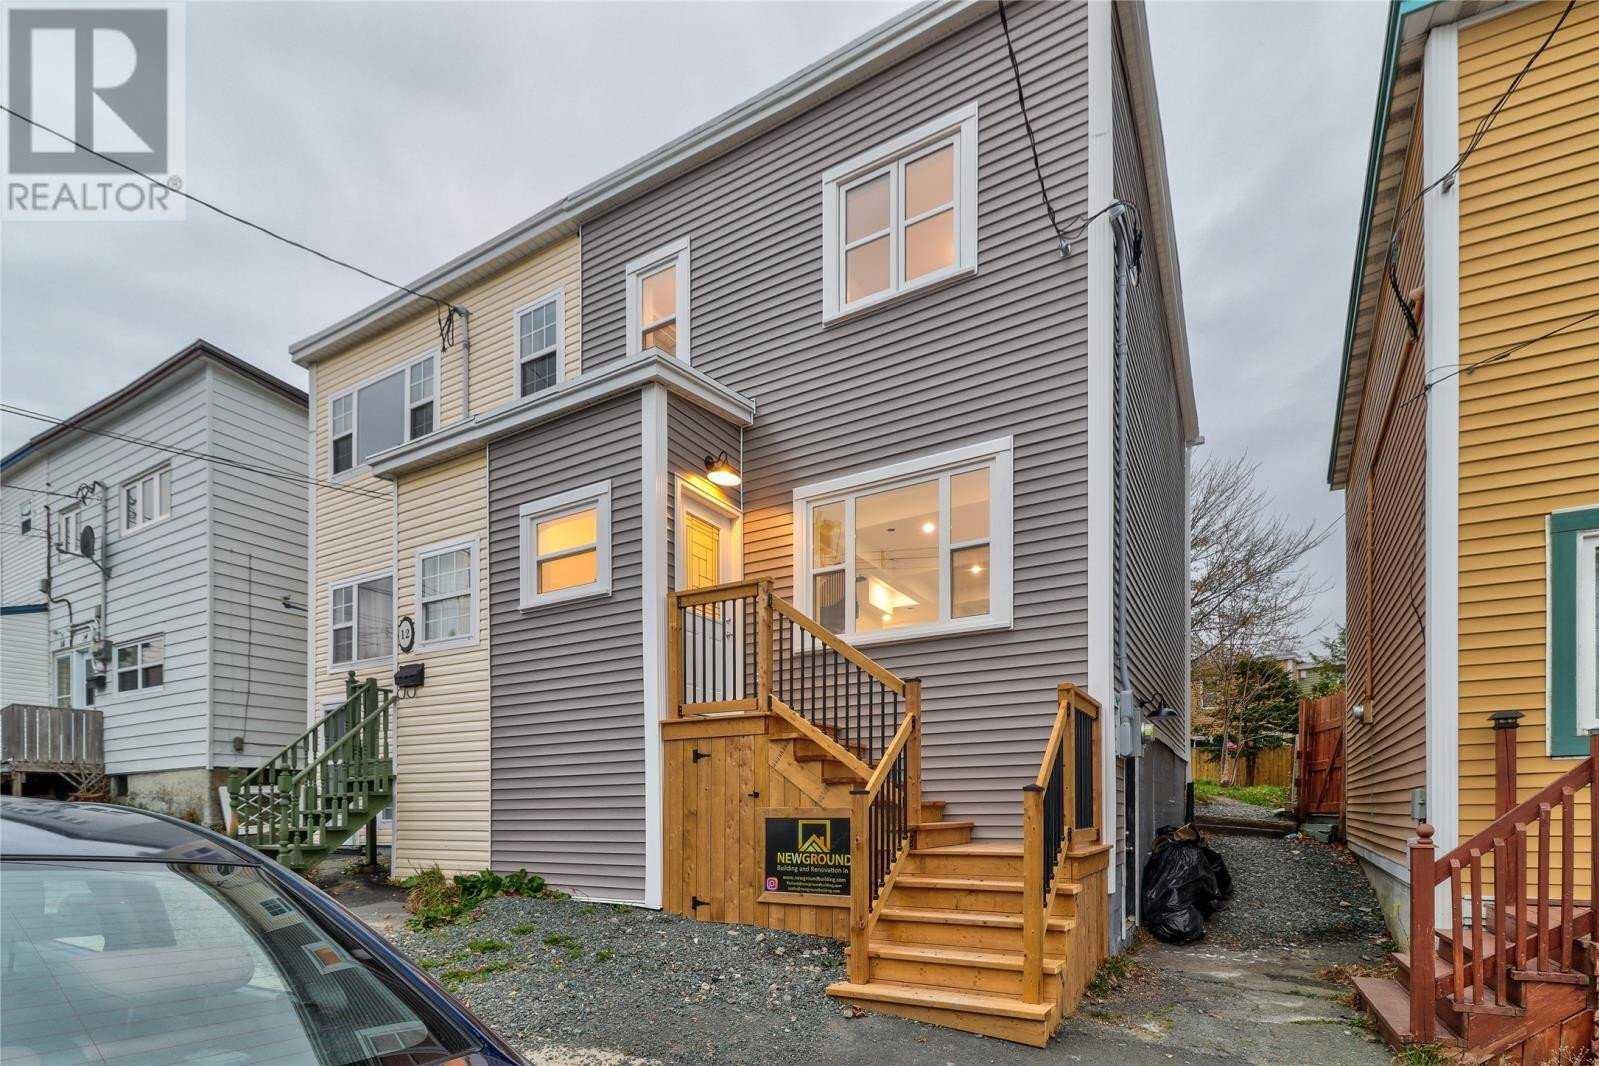 House for sale at 10 Franklyn Ave St. John's Newfoundland - MLS: 1223441